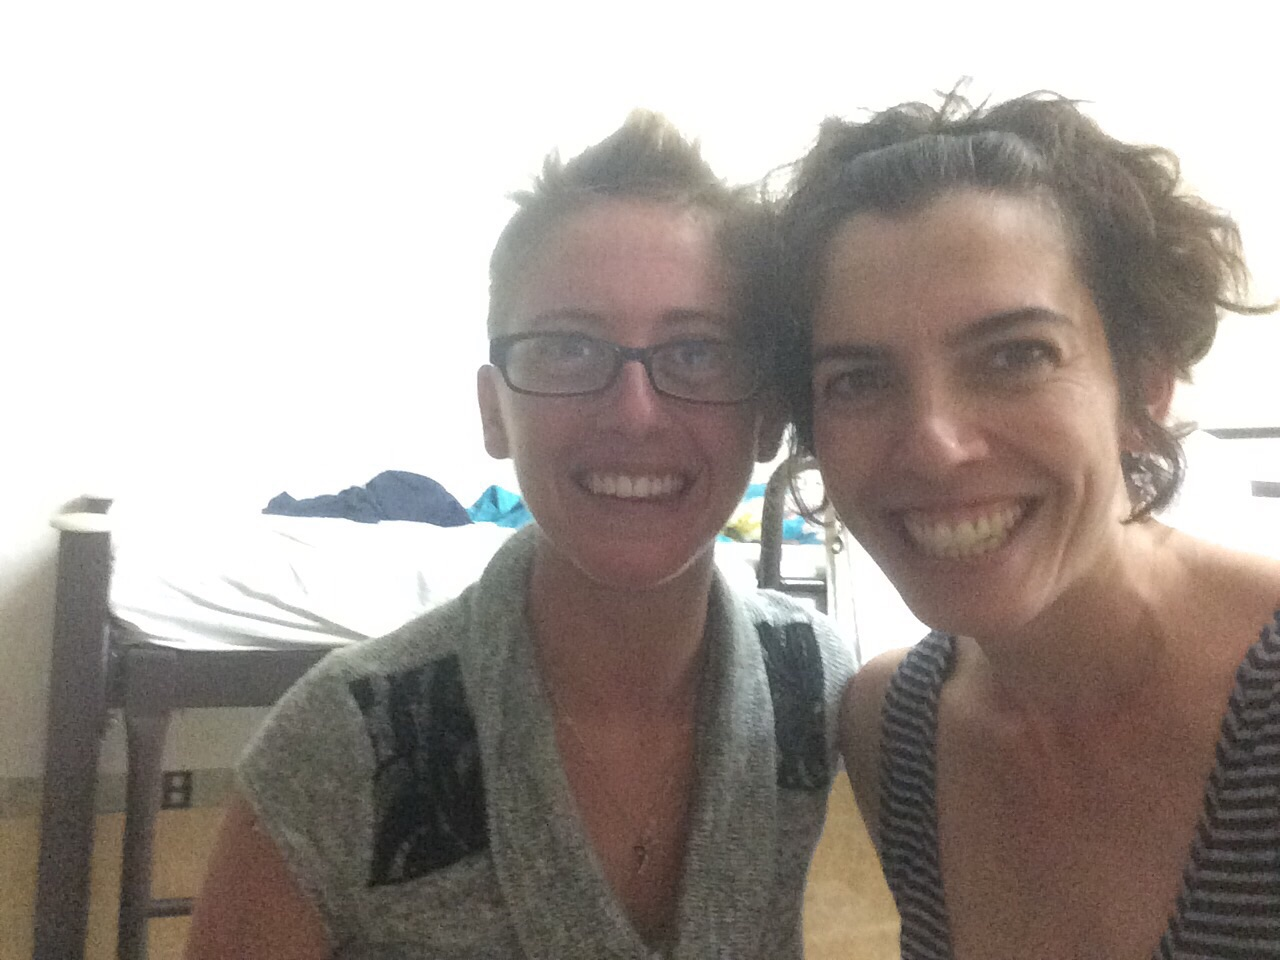 Me and Janelle, a fellow traveler, diver, and Denver resident.